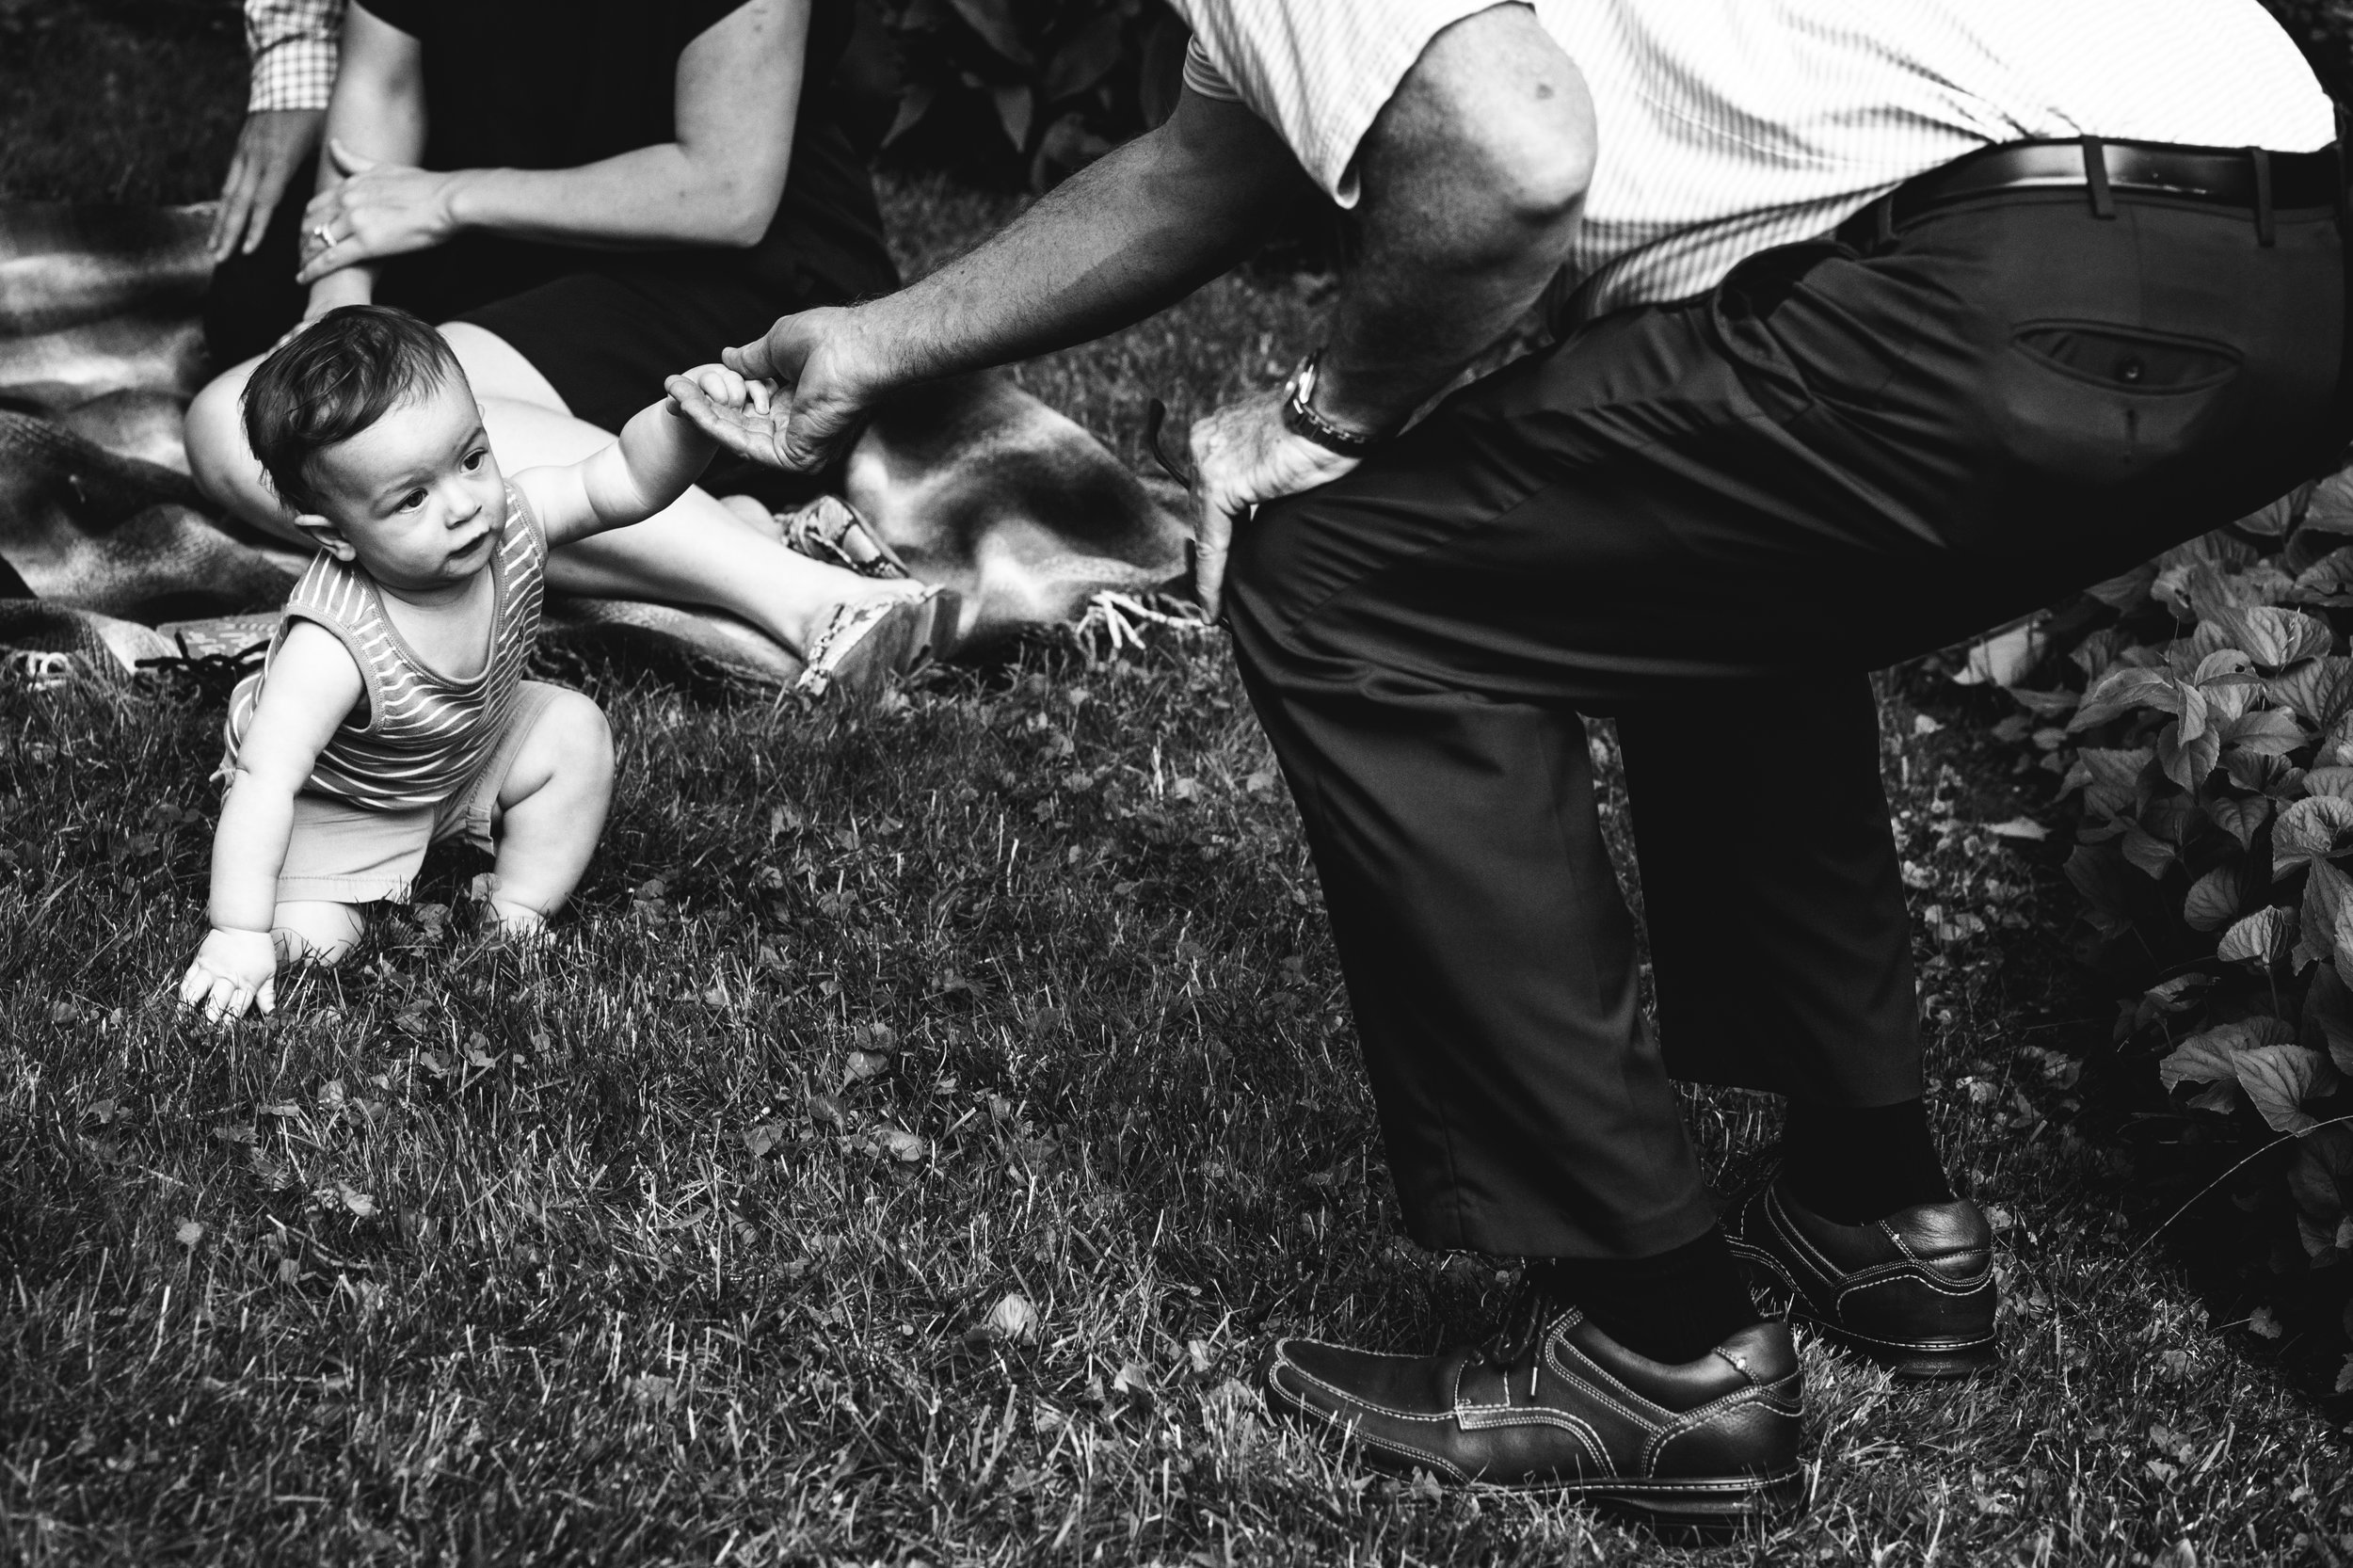 black and white photograph of father helping his son stand up to walk in the grass